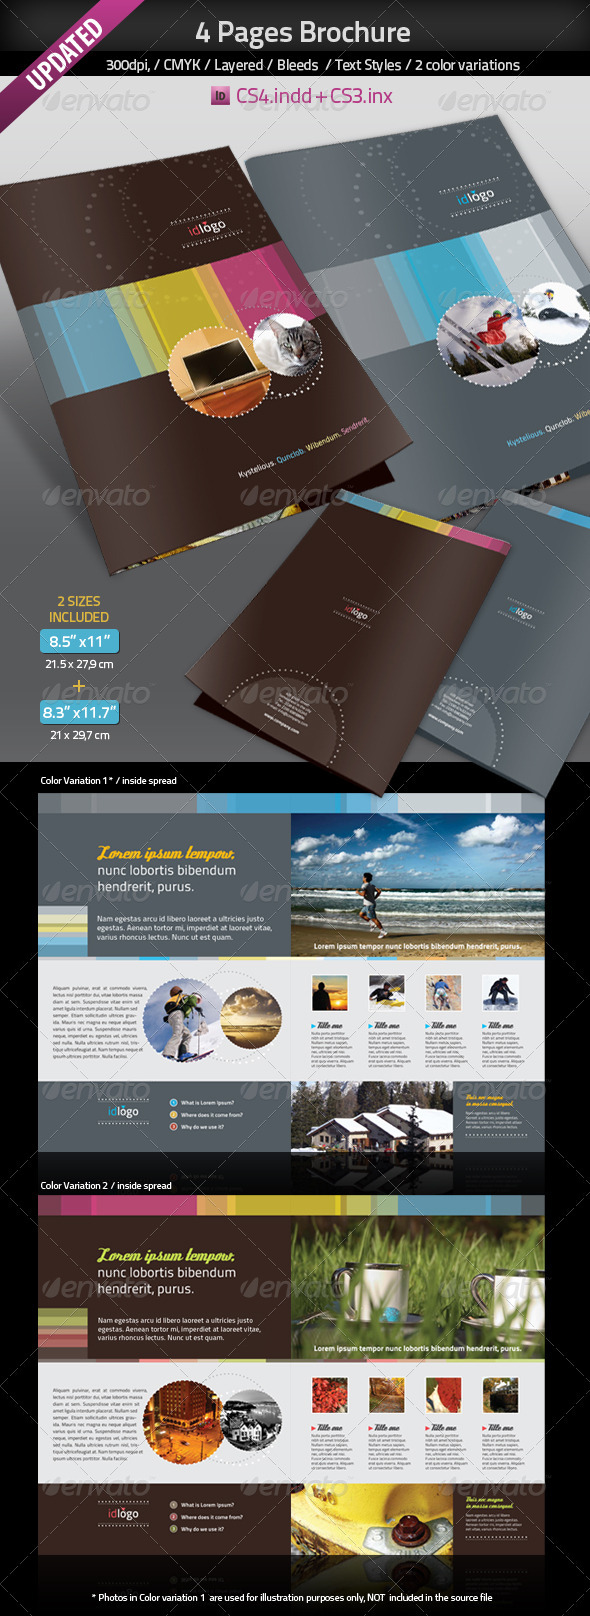 4pages A4 Brochure - Corporate Brochures